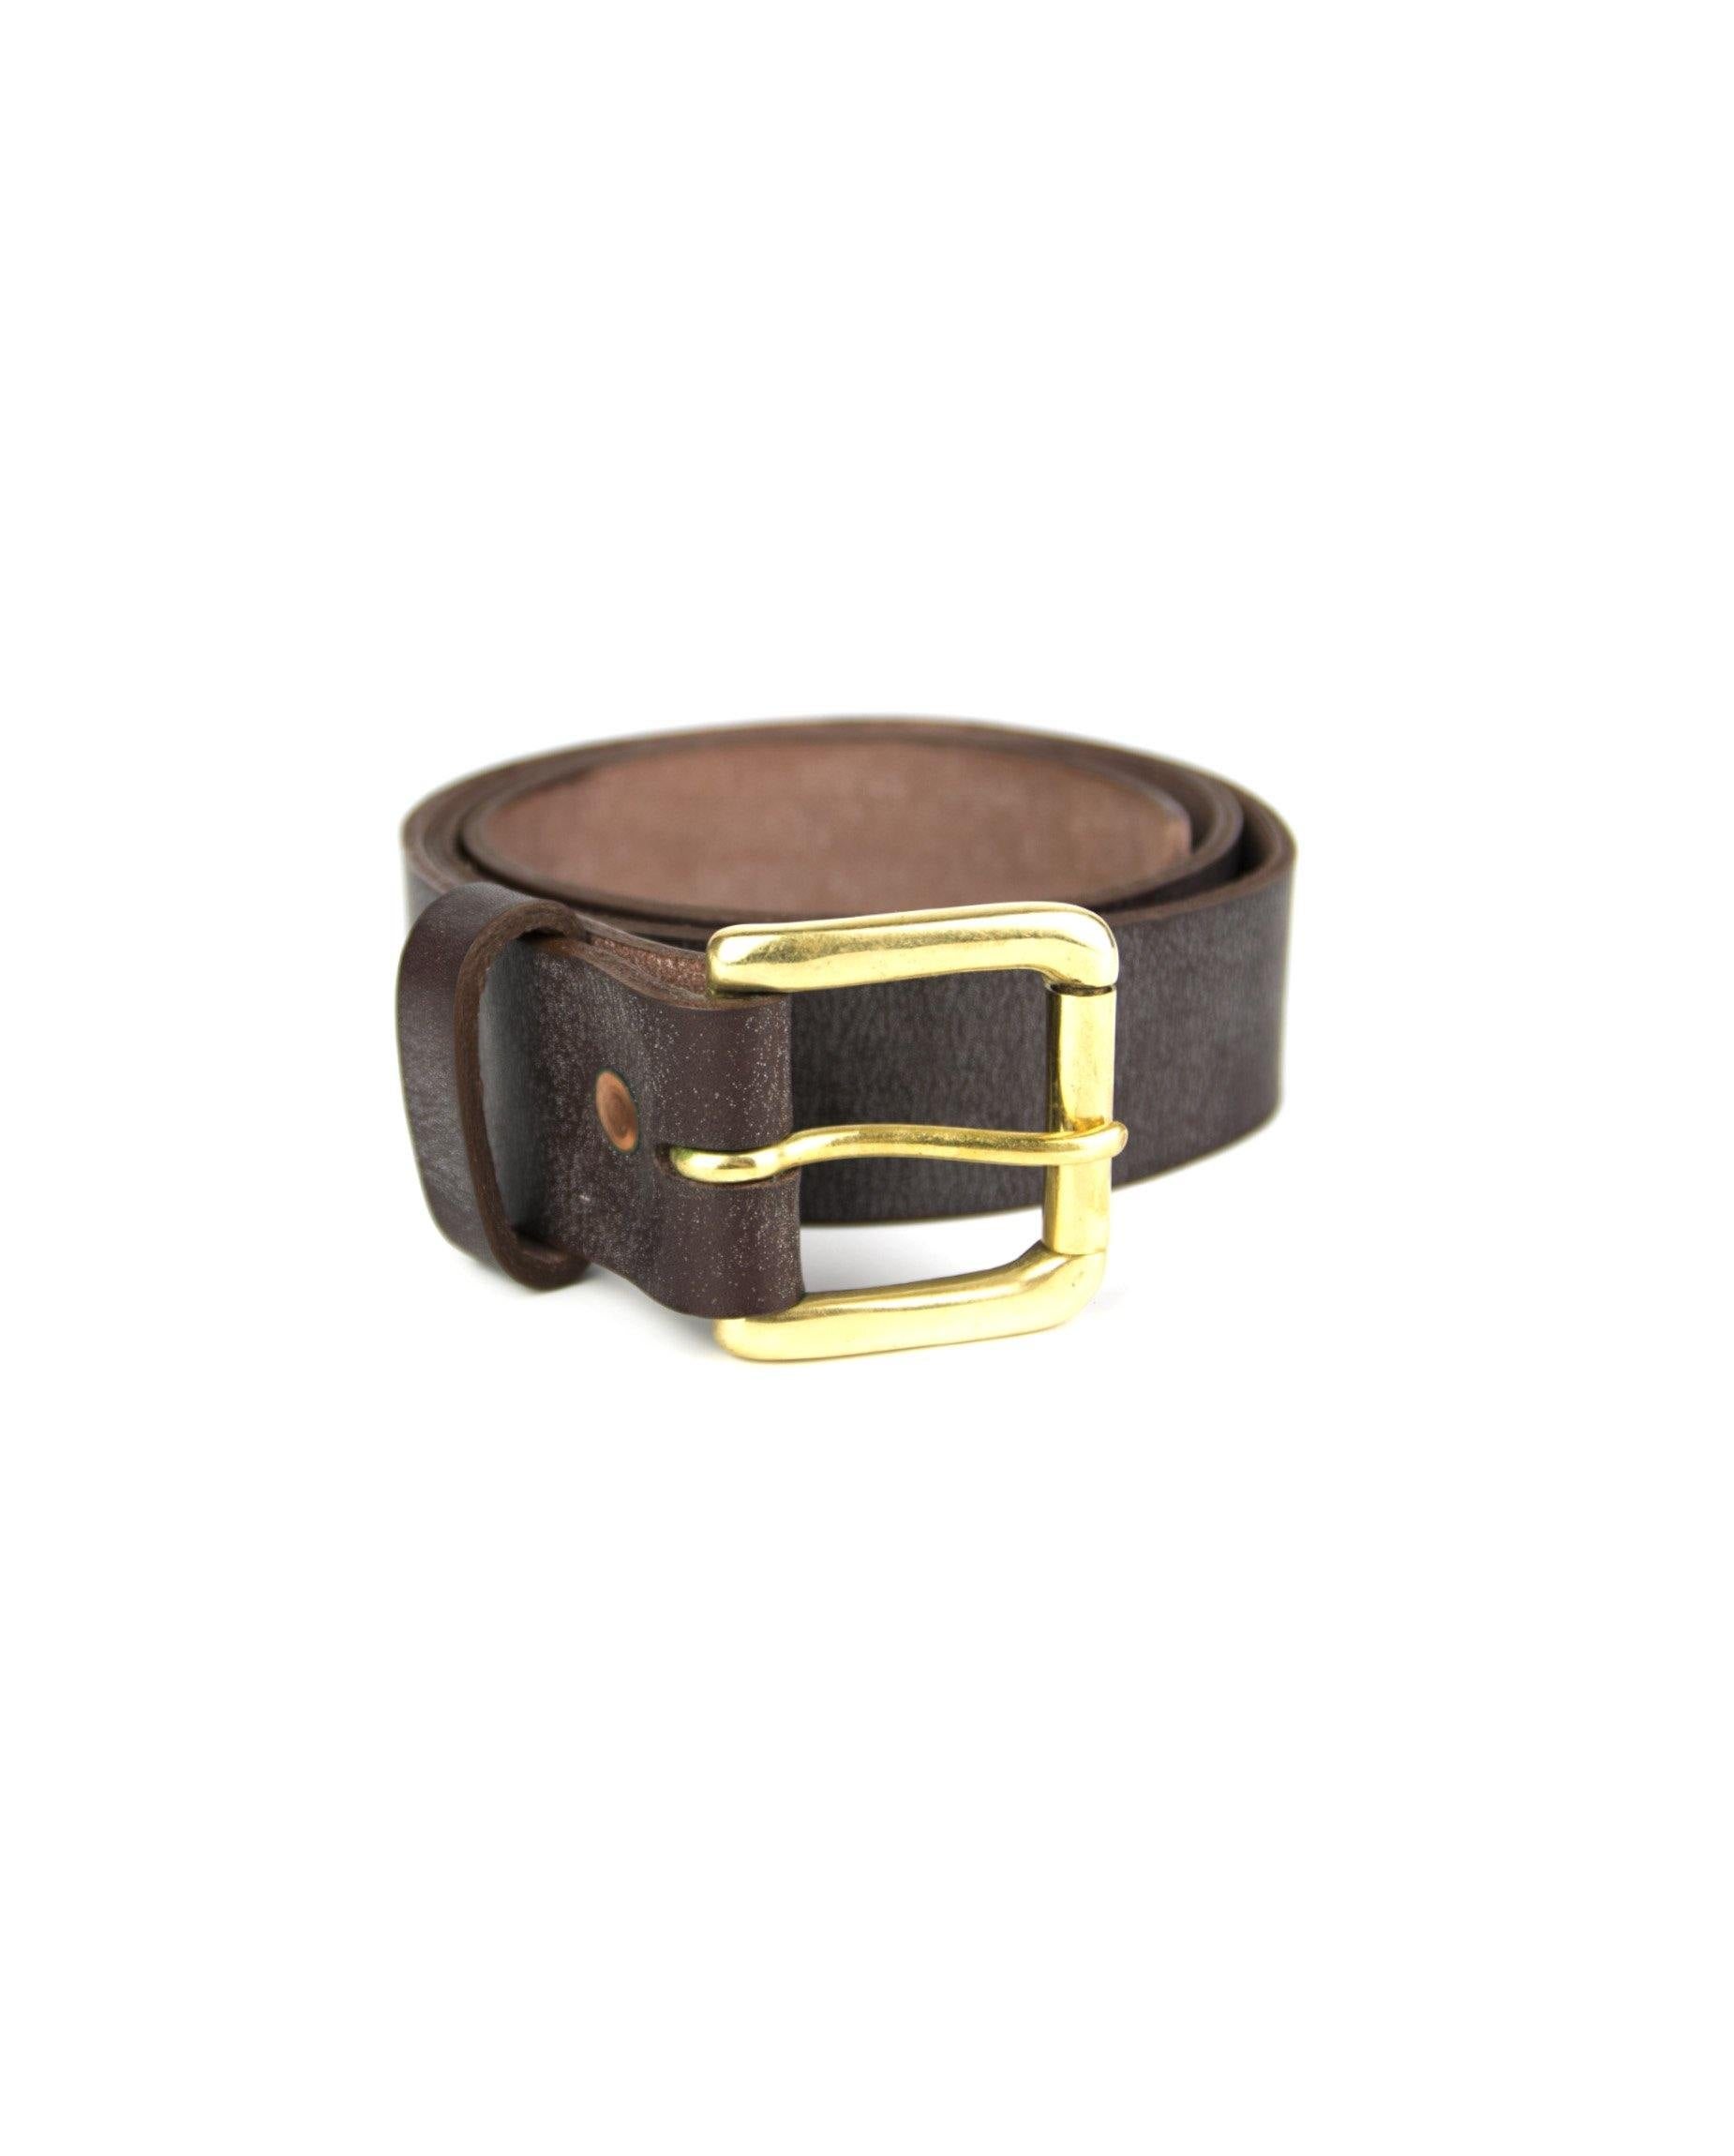 Vauxhall Belt - Brown - Debonair